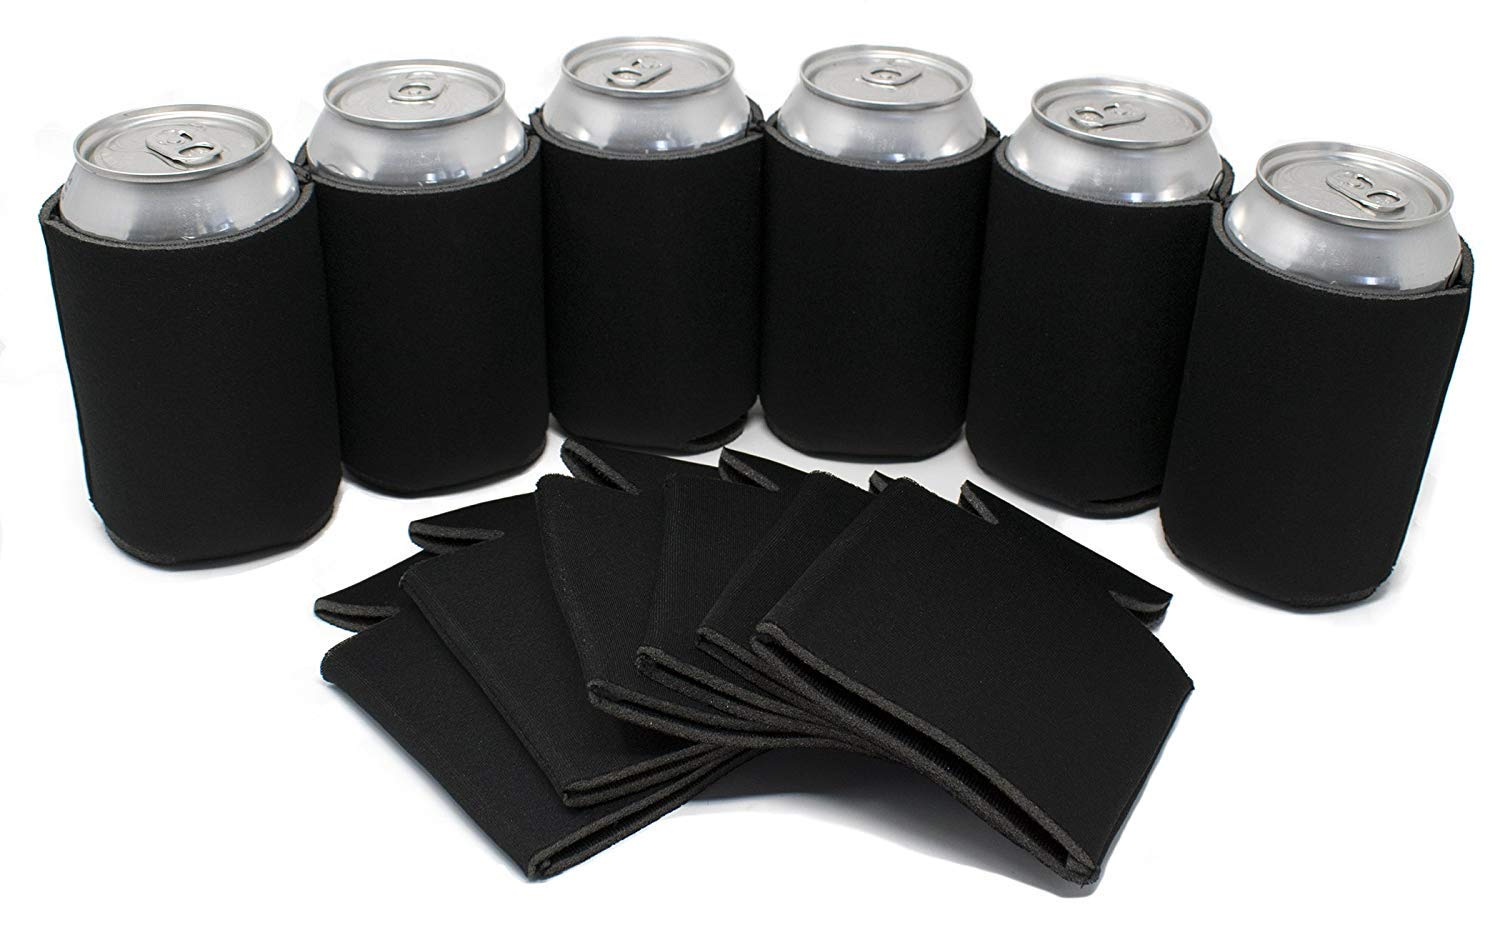 Tahoebay 100 Can Sleeves for Standard Cans Blank Poly Foam Beer Insulator Coolers (Black, 100) by G7 Power